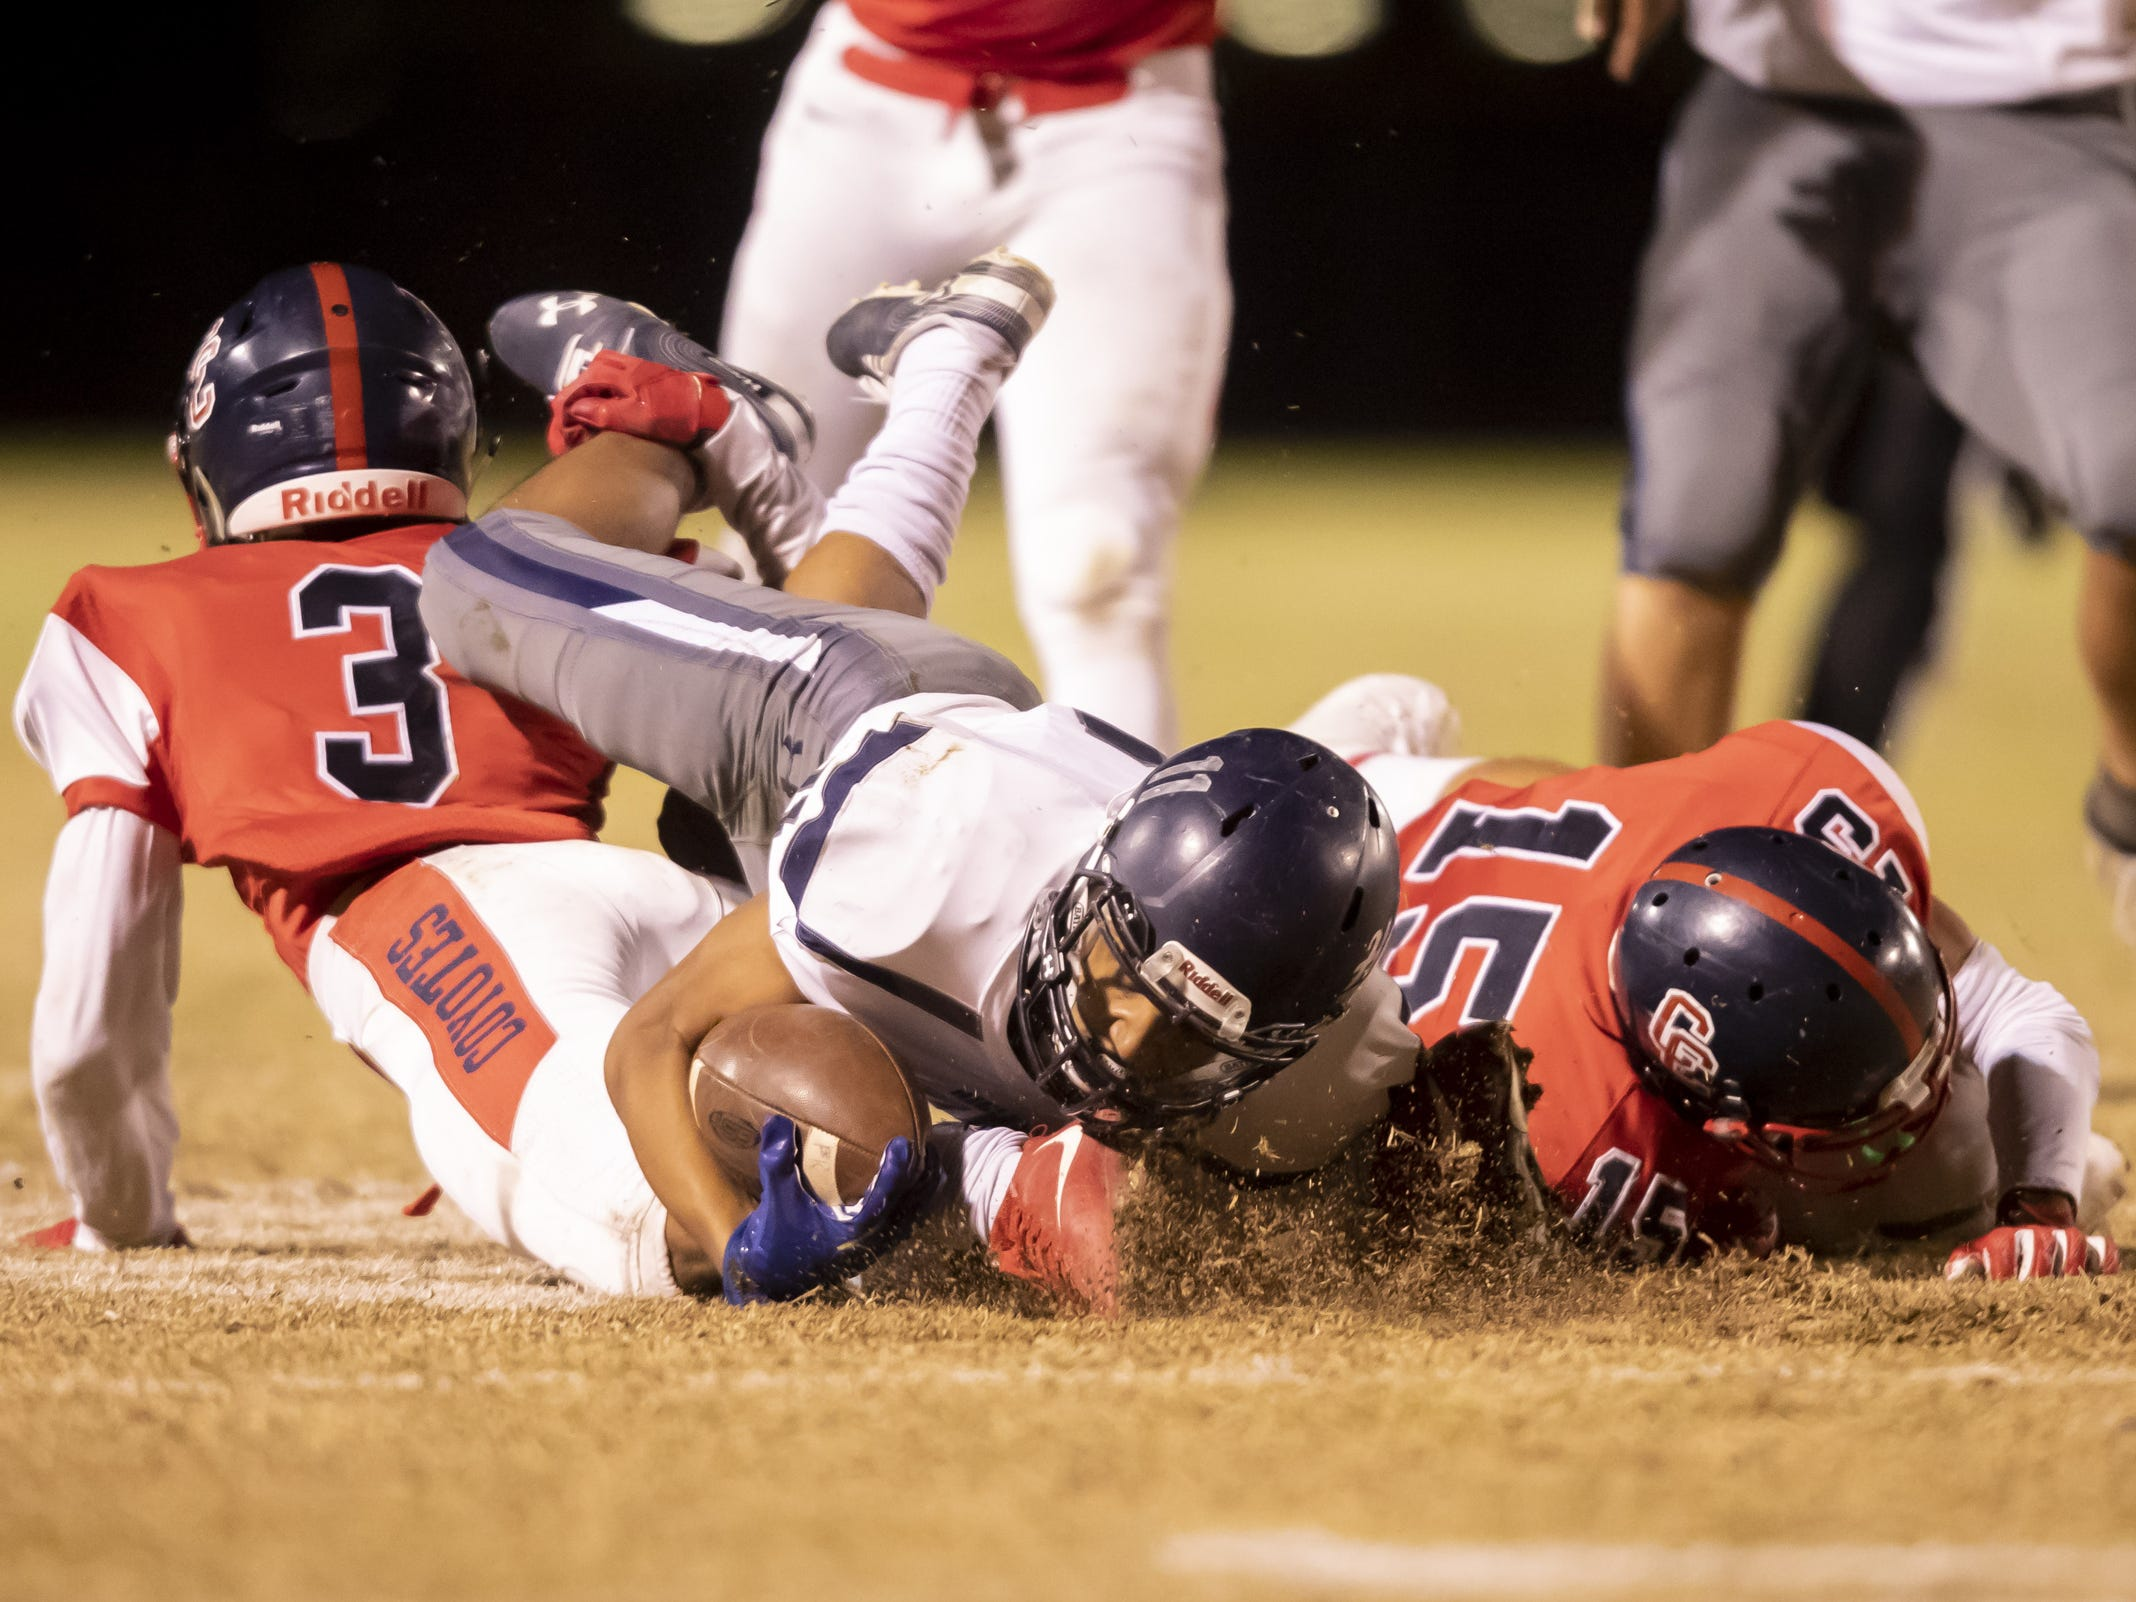 Junior wide receiver Isaiah Eastman (11) of the Higley Knights is tackled by junior cornerback Eric Haney (15) of the Centennial Coyotes in the playoffs at Willow Canyon High School on Friday, November 16, 2018 in Surprise, Arizona. #azhsfb